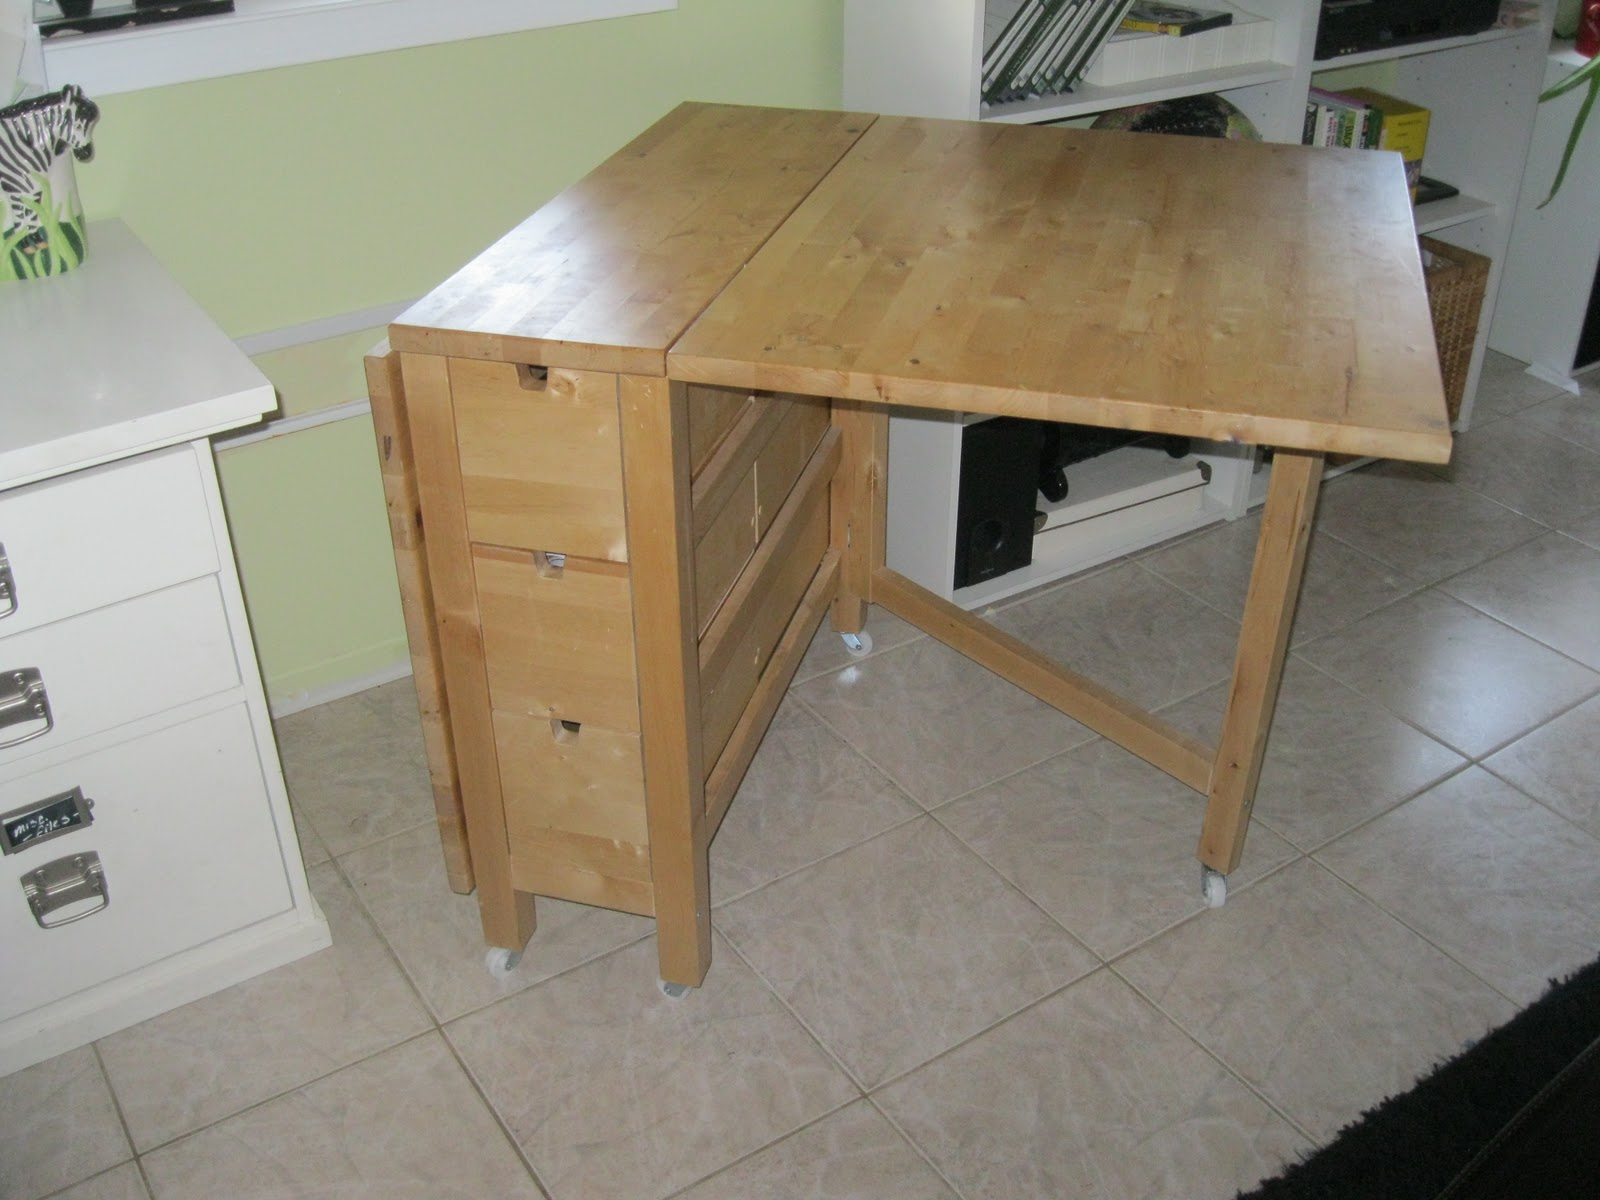 ... Table together with Wooden Cl s Woodworking. on sewing furniture plans